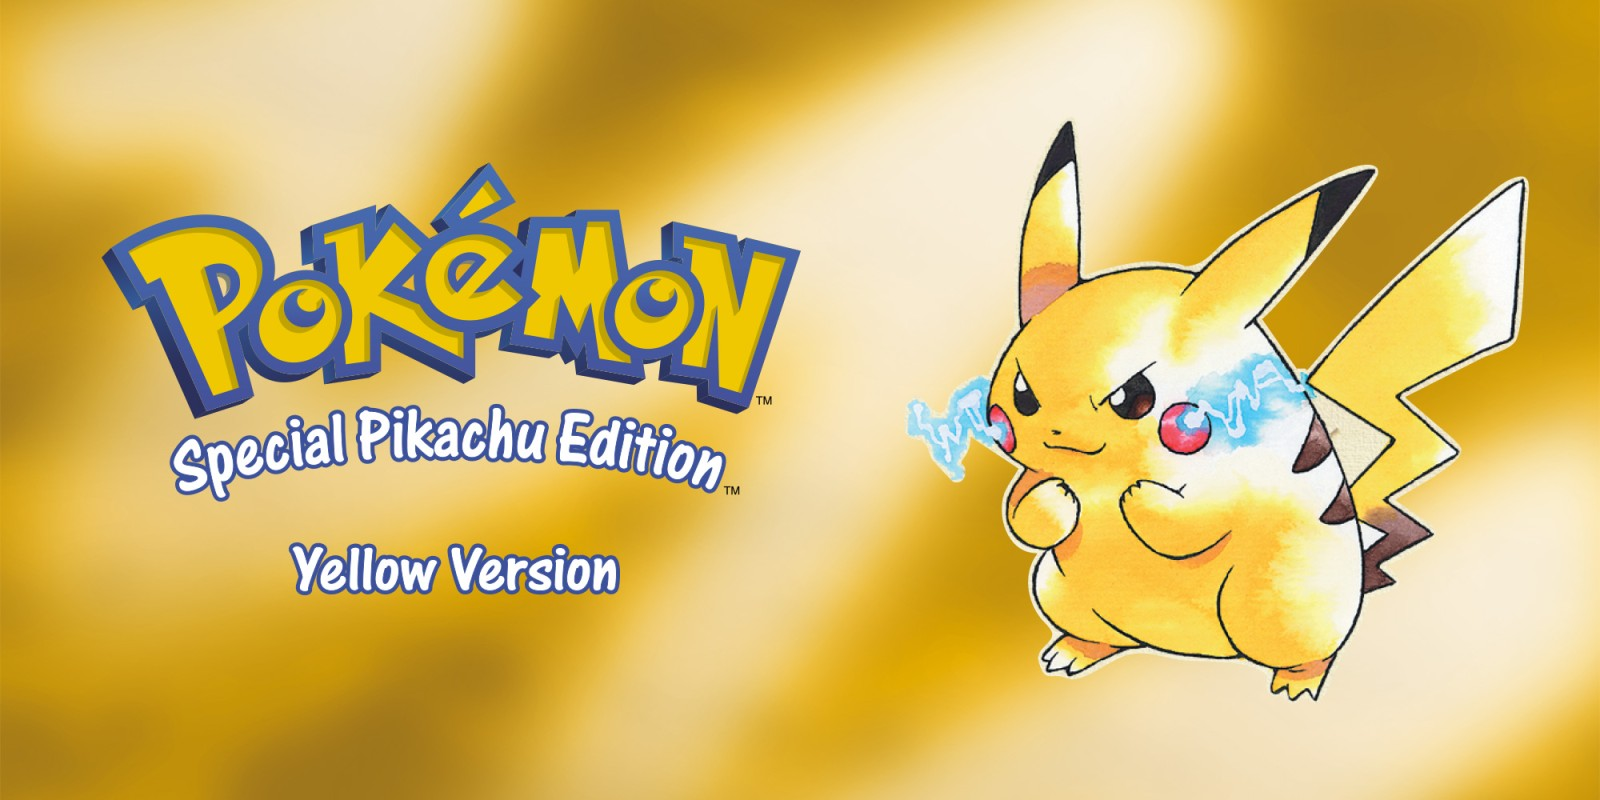 Pokémon Yellow Version: Special Pikachu Edition